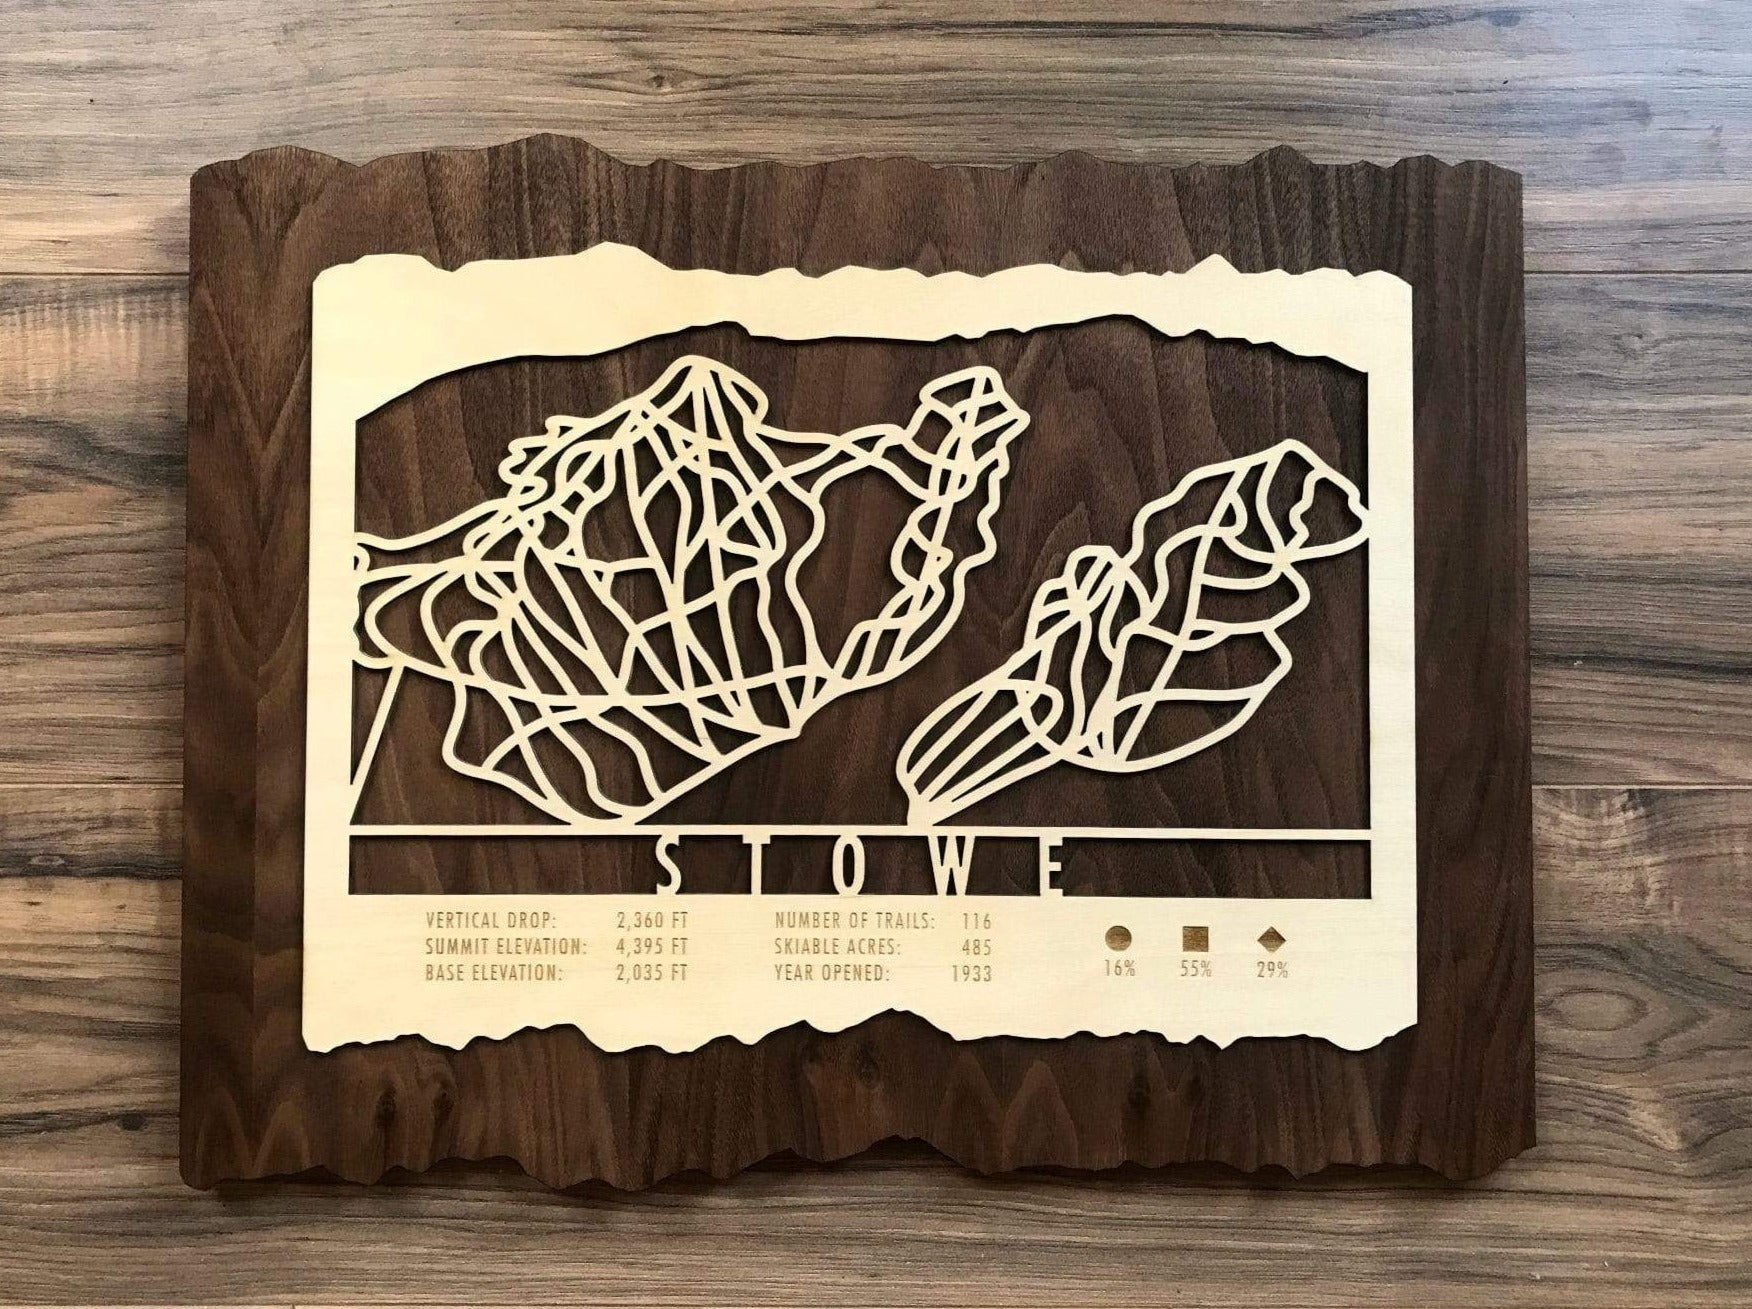 Stowe Ski Decor Trail Map Art - MountainCut